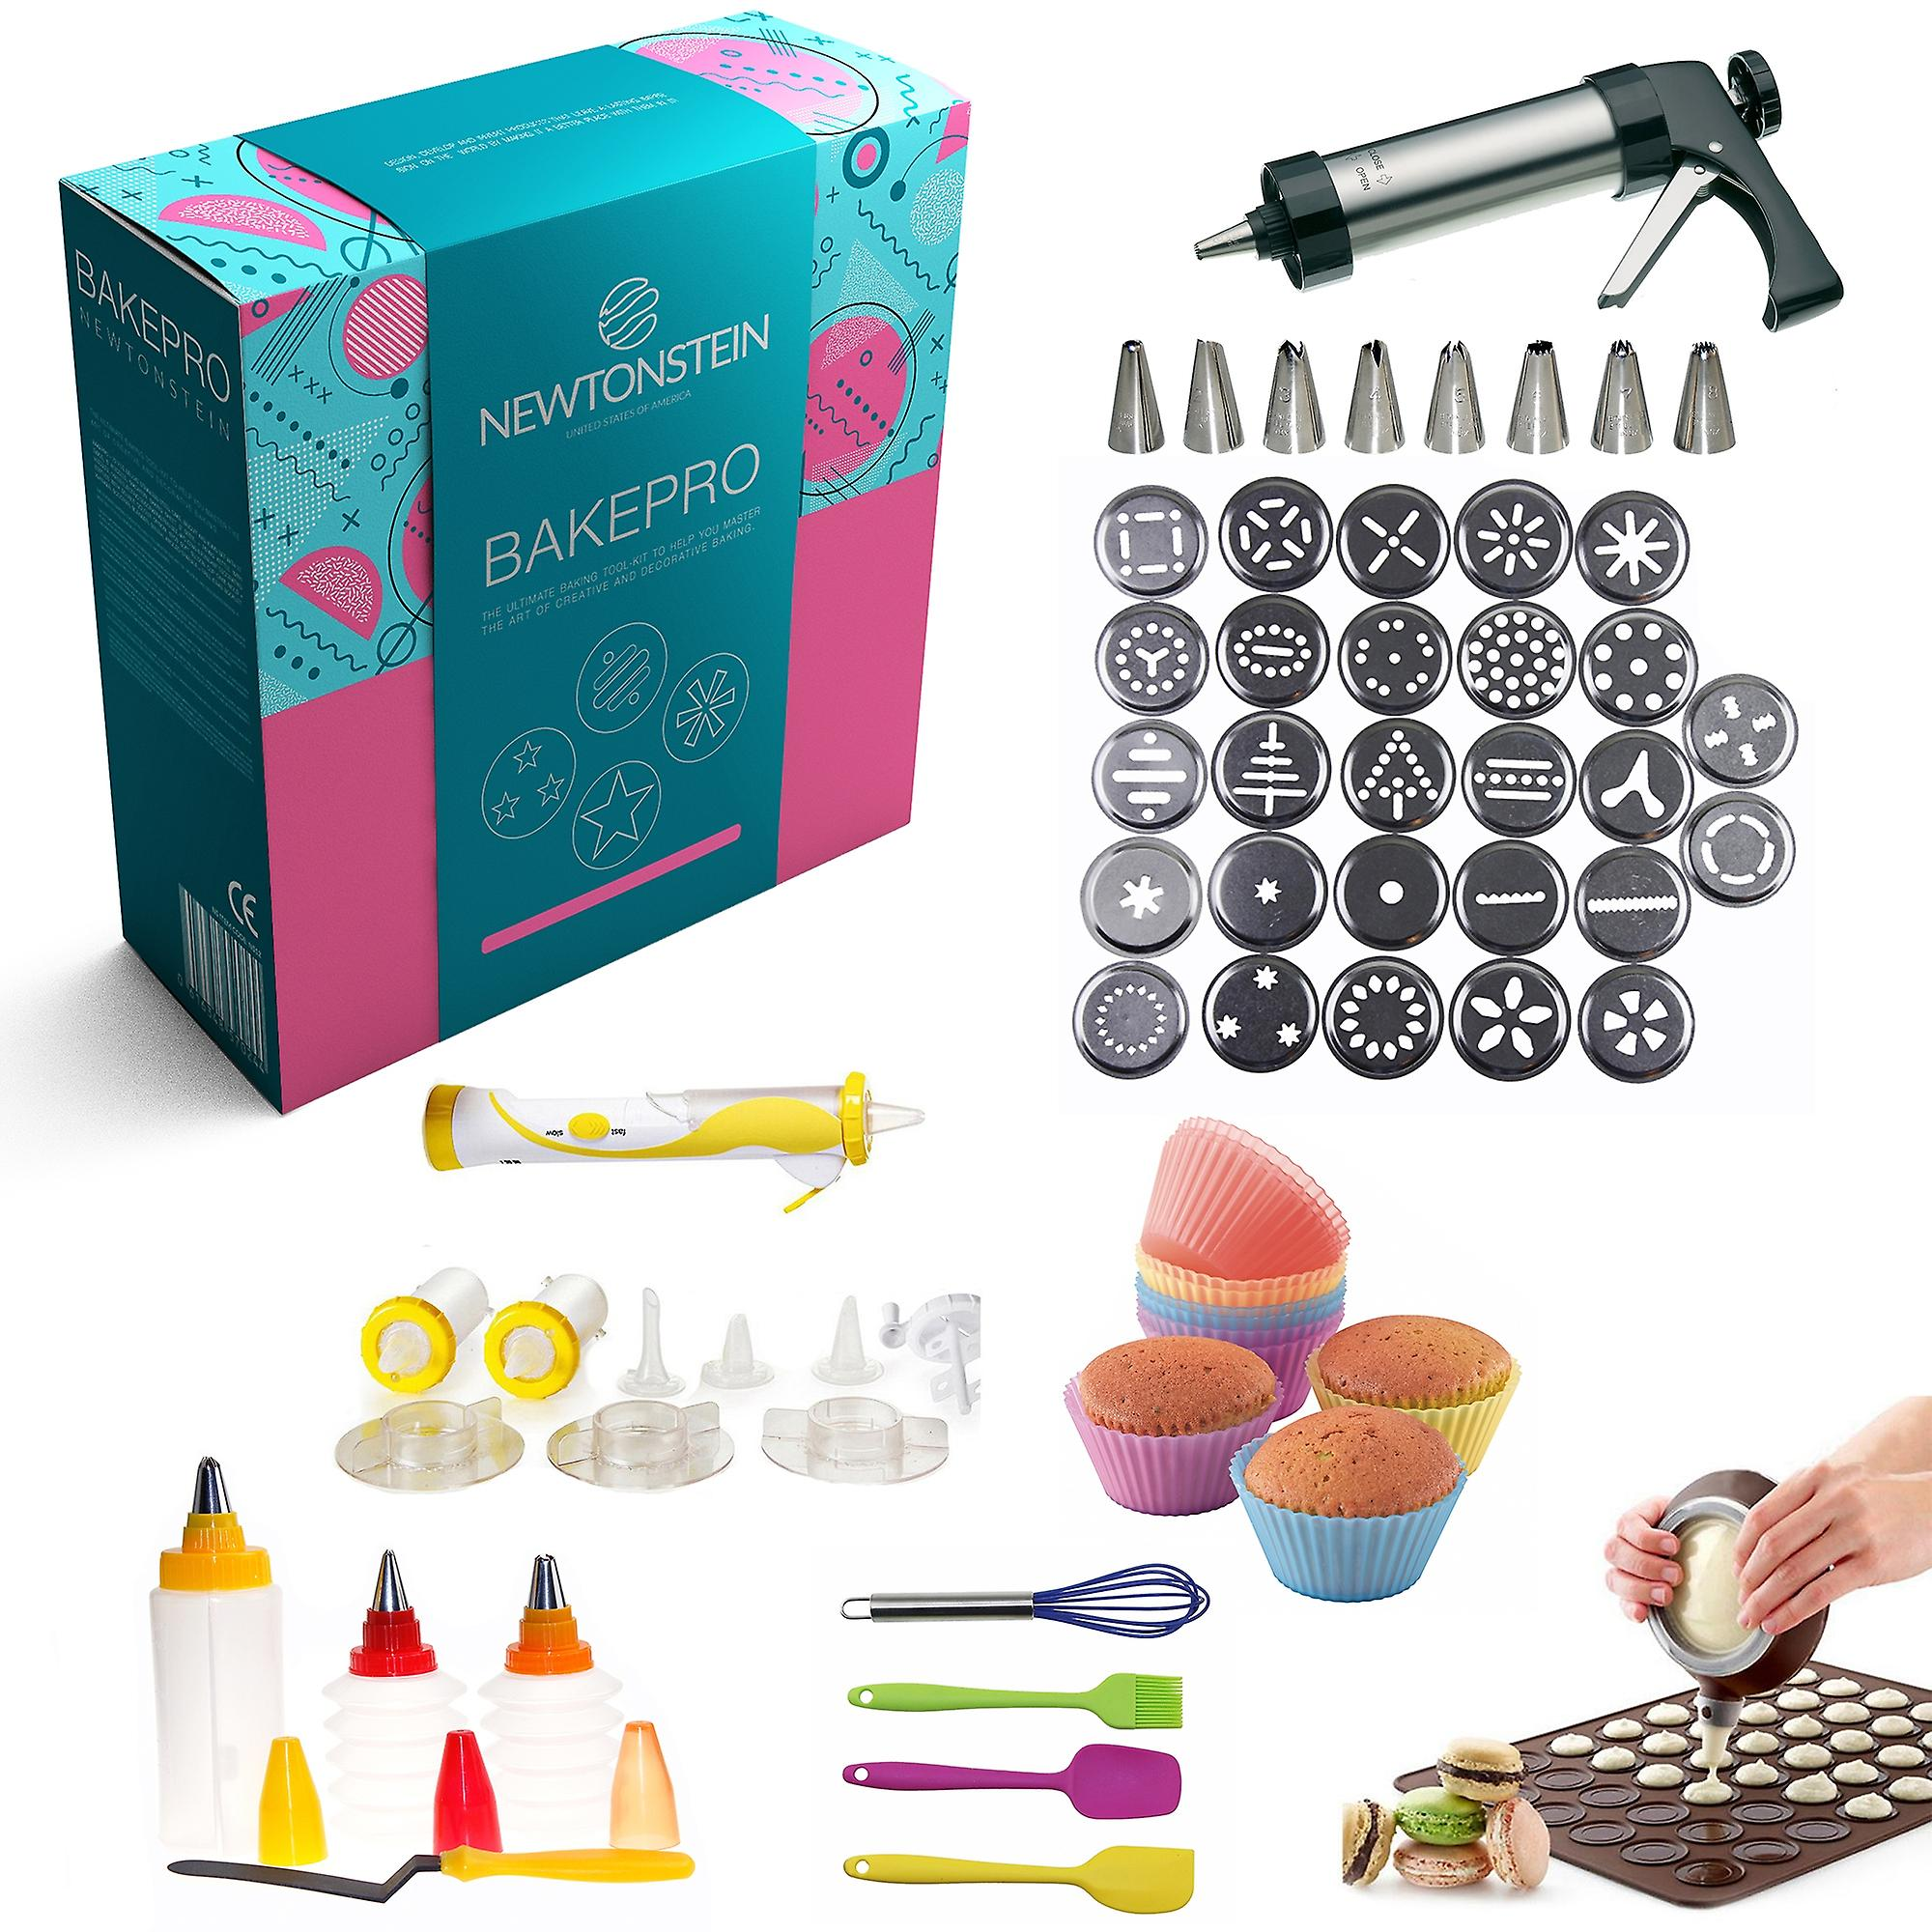 BakePro - 72 Pcs Deluxe Stainless Steel Cake Biscuit and Icing Set with 27 Discs 8 Nozzles Macaron Baking Sheet + Piping Kettle 14pcs ELECTRIC Decorating Pen Set 8 Pc Icing and Fondant Decorating Bottles with Double Colour Option Angled Spatula 6 Pcs Soft Silicon Cup Cake Mold and 4 Preparation Accessories + FREE IDEAS Booklet